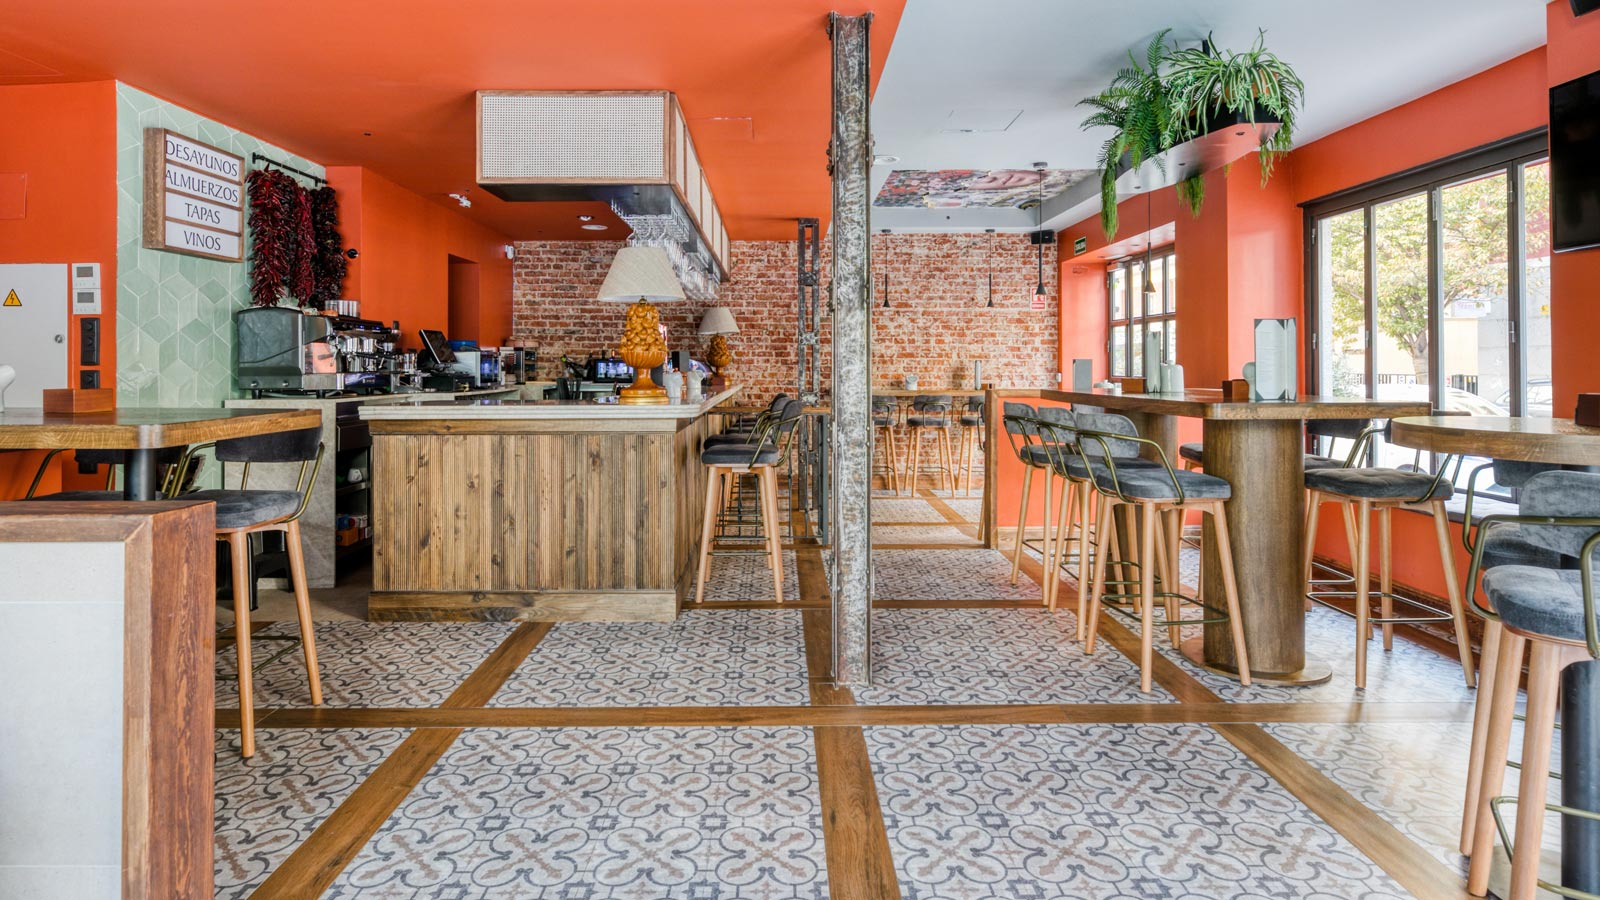 Porcelanosa Group Projects: an eclectic touch for the Lacabia restaurant